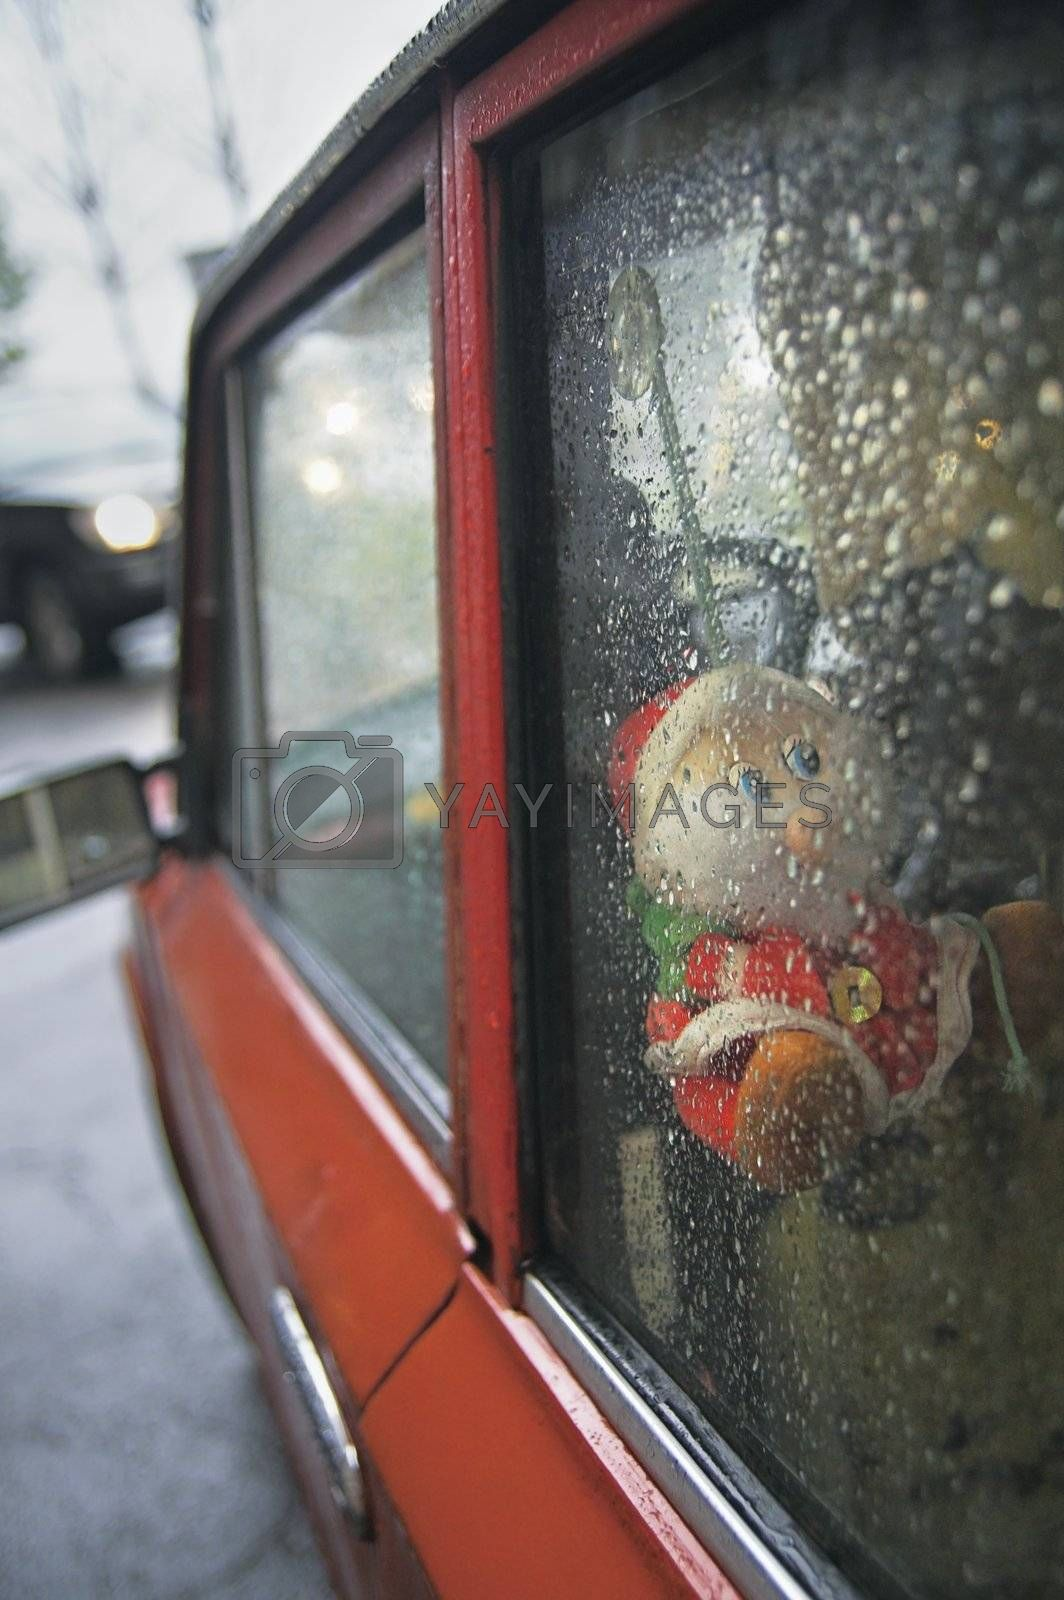 Dwarf toy viewed through car window while raining